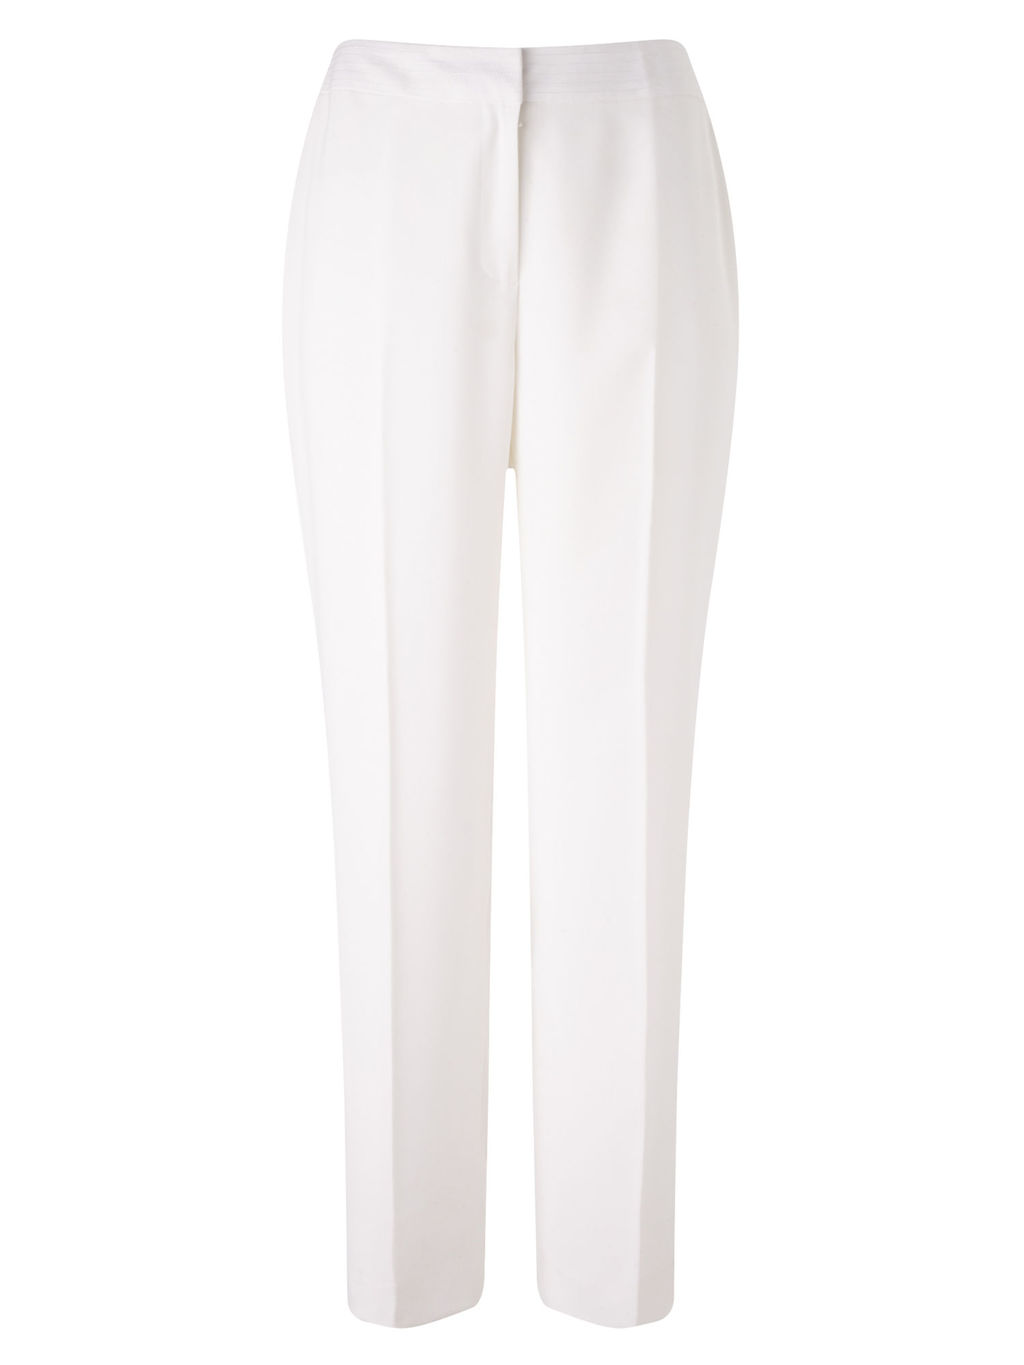 Occasion Trousers, Ivory - pattern: plain; style: peg leg; waist: mid/regular rise; predominant colour: white; length: ankle length; fibres: polyester/polyamide - 100%; occasions: occasion; fit: tapered; pattern type: fabric; texture group: other - light to midweight; season: s/s 2016; wardrobe: event